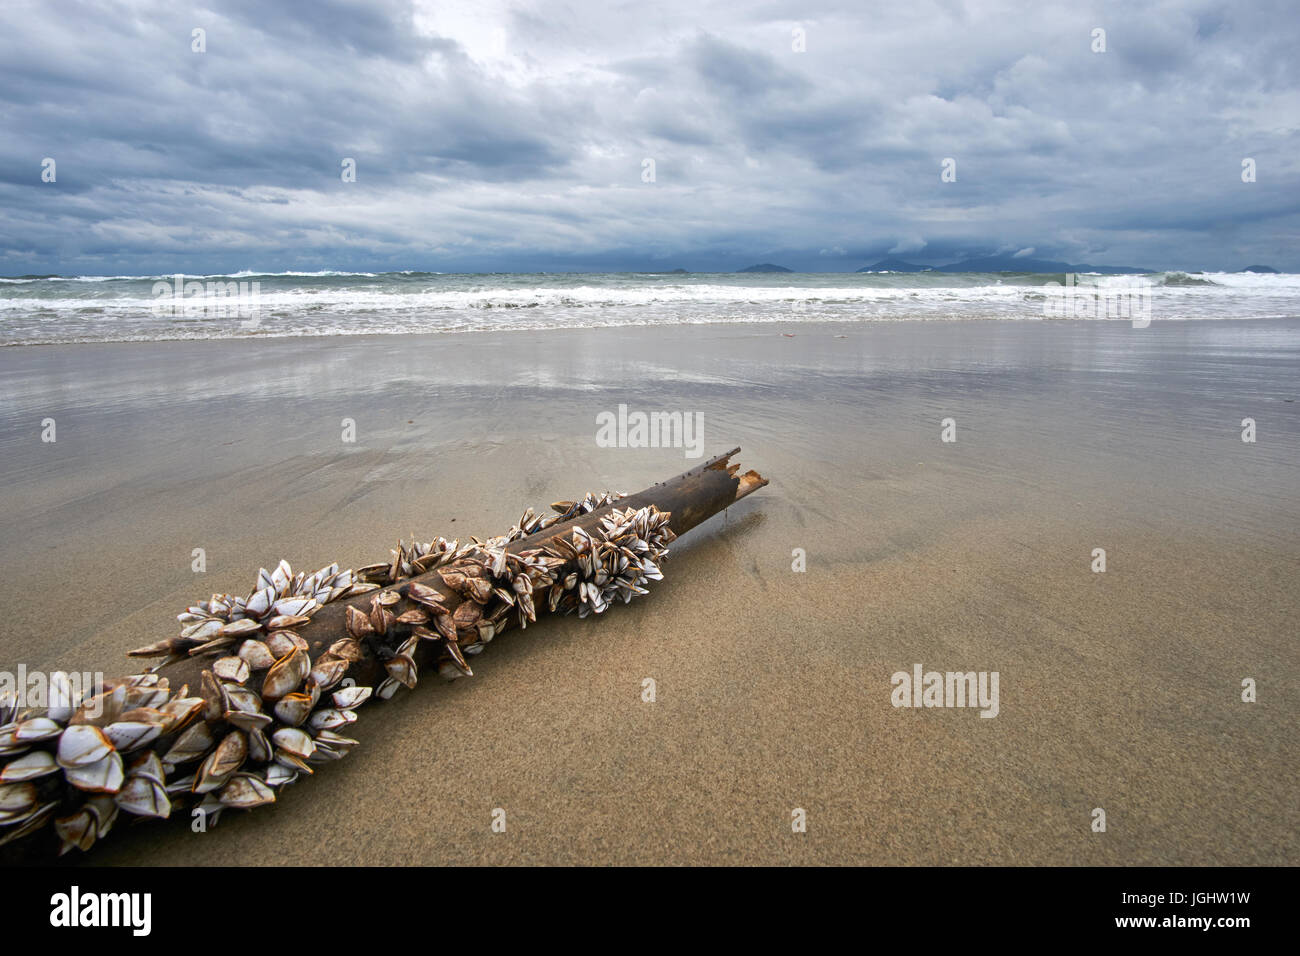 Bamboo stick with mussels on it lying on the beach. Stormy evening at the beach with dramatic clouds and waves. Stock Photo